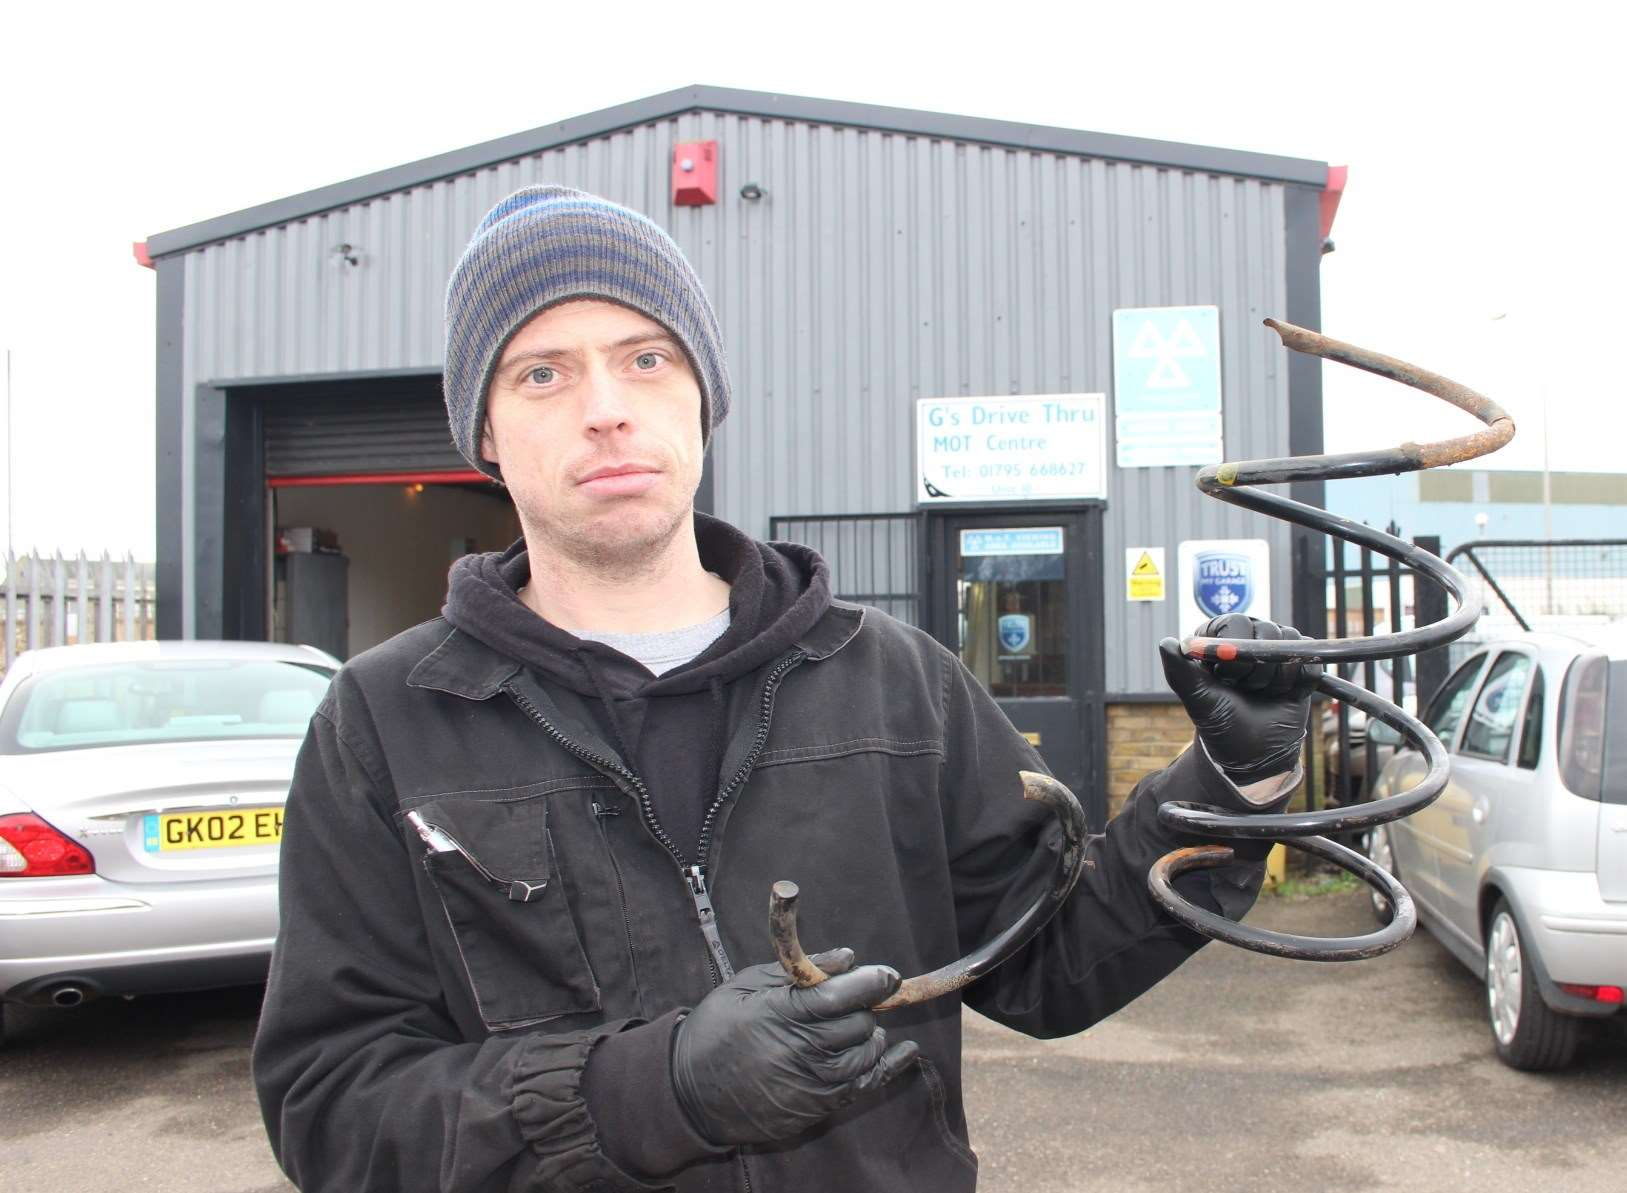 Stuart Bradburn of G's Drive-Thru MOT Centre in Blue Town, Sheerness, says he is replacing at least three car springs a week.